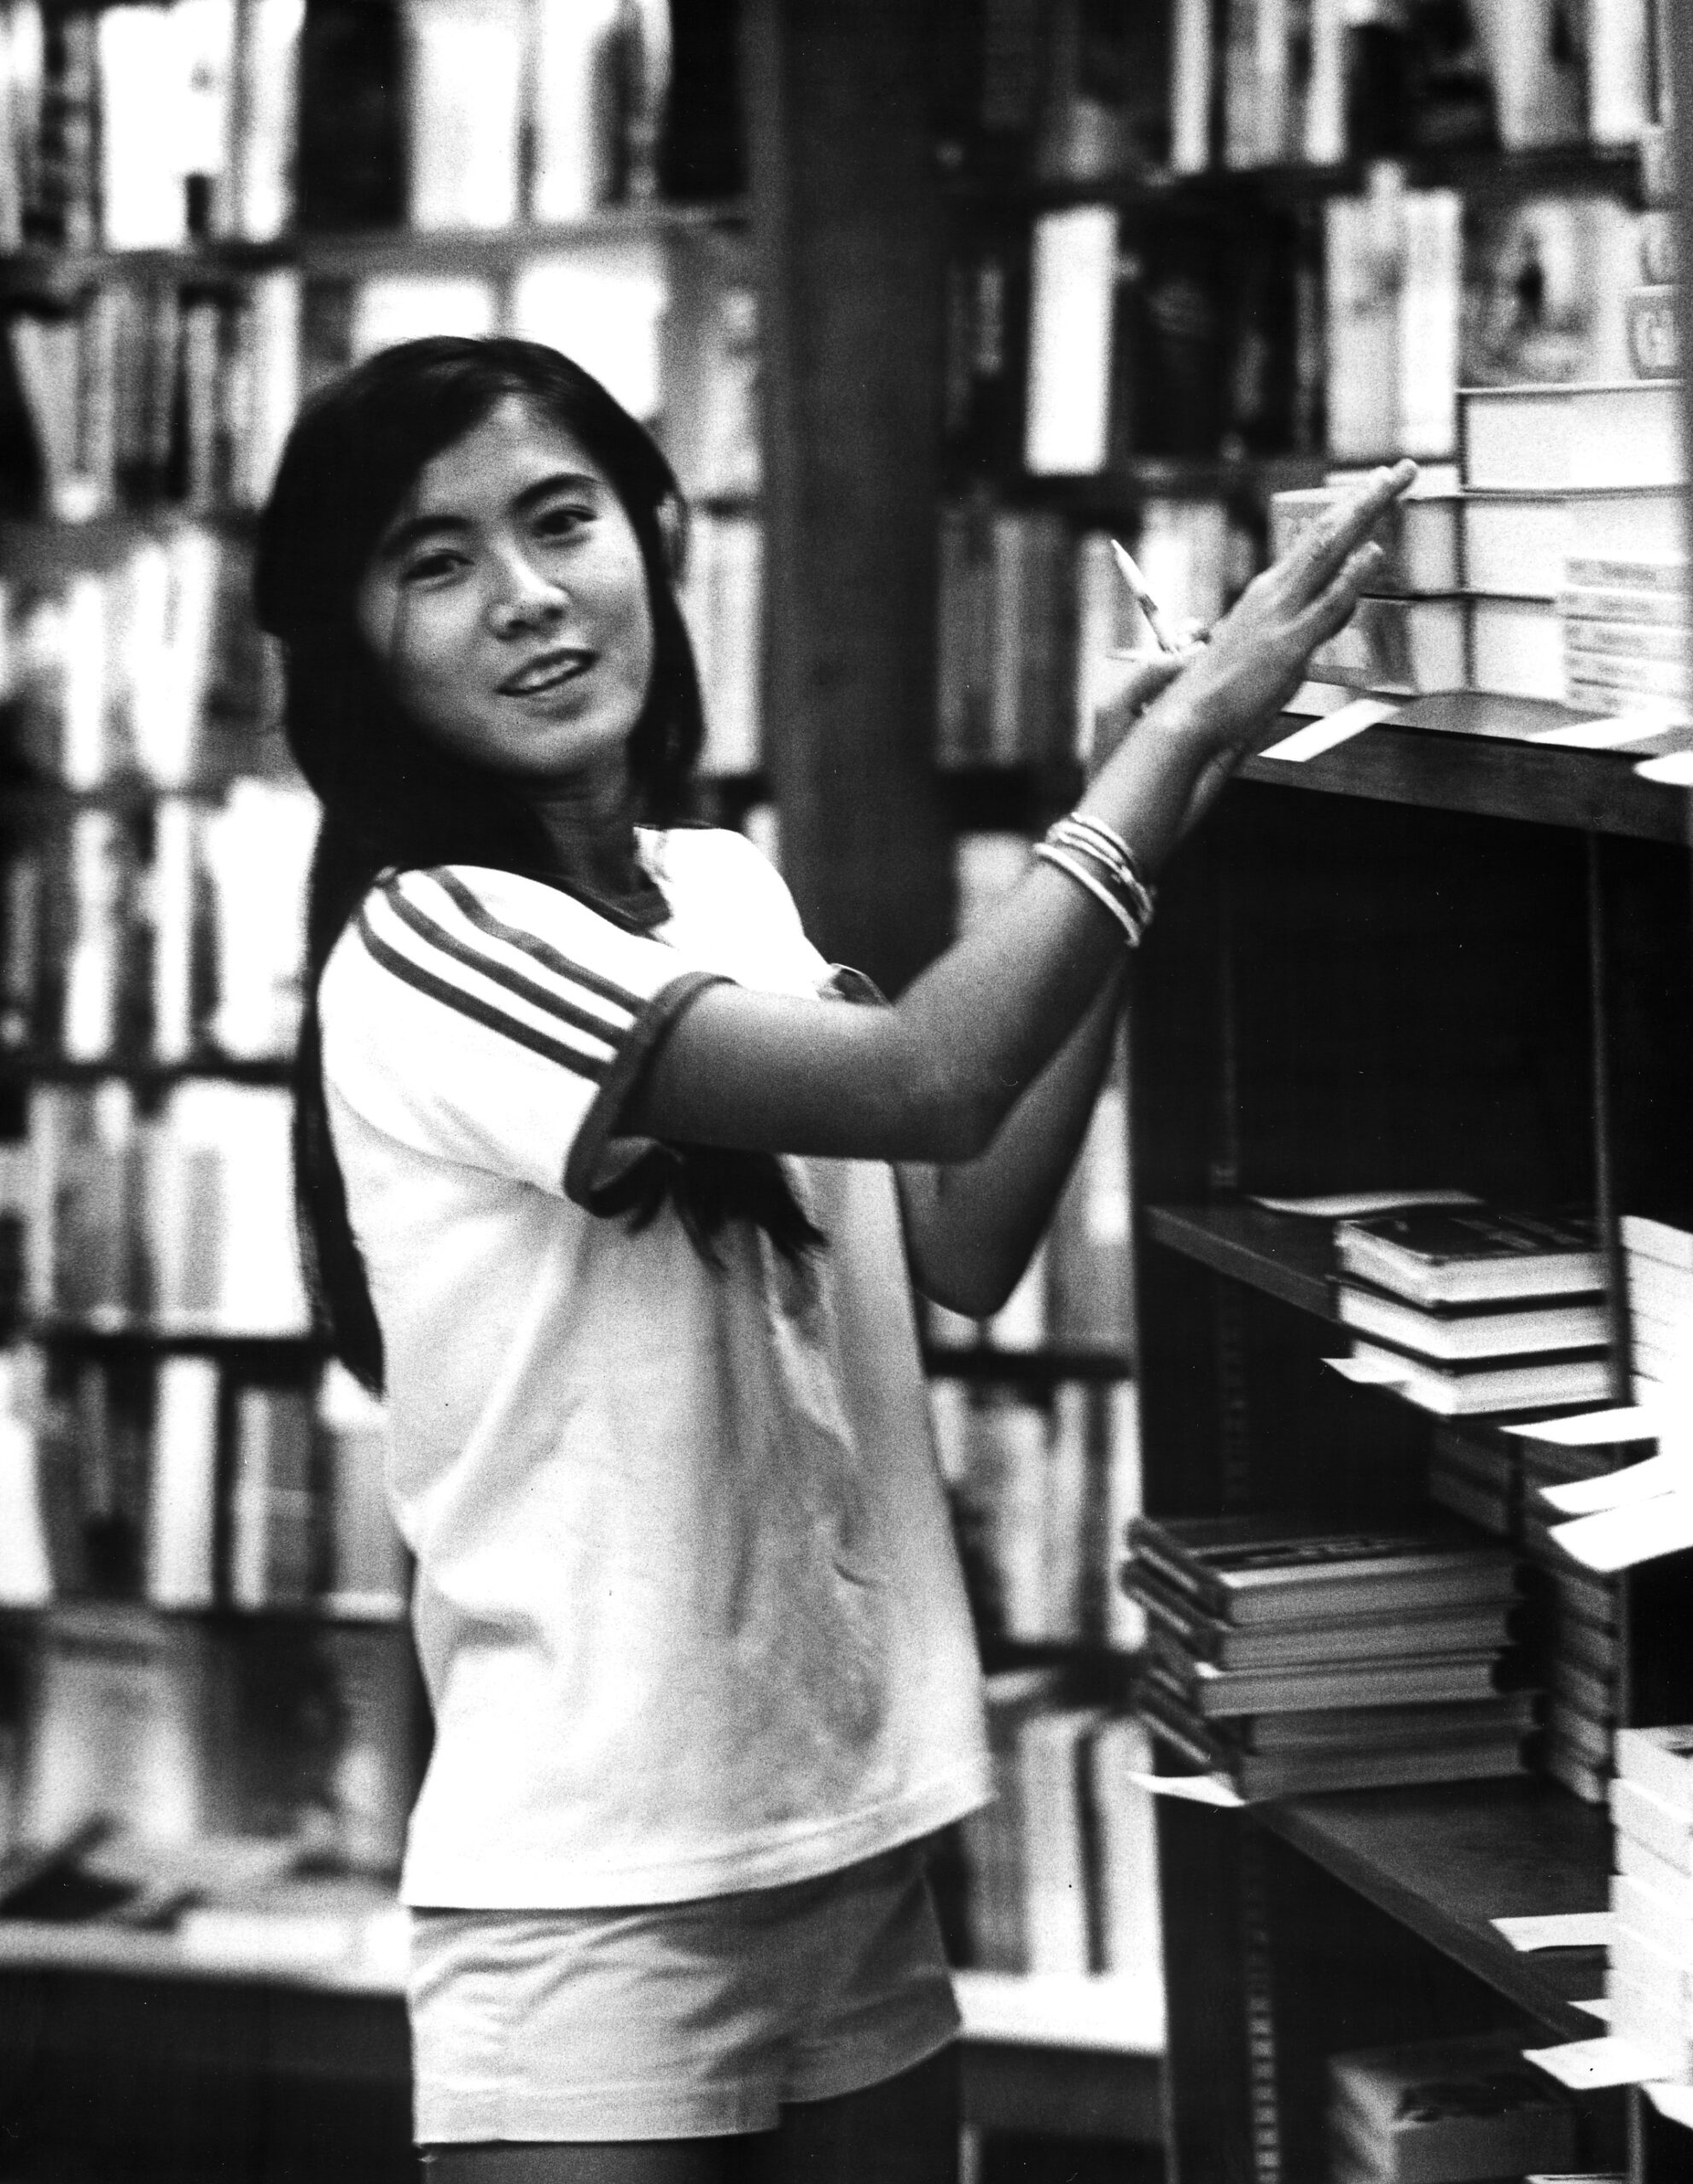 Student in bookstore